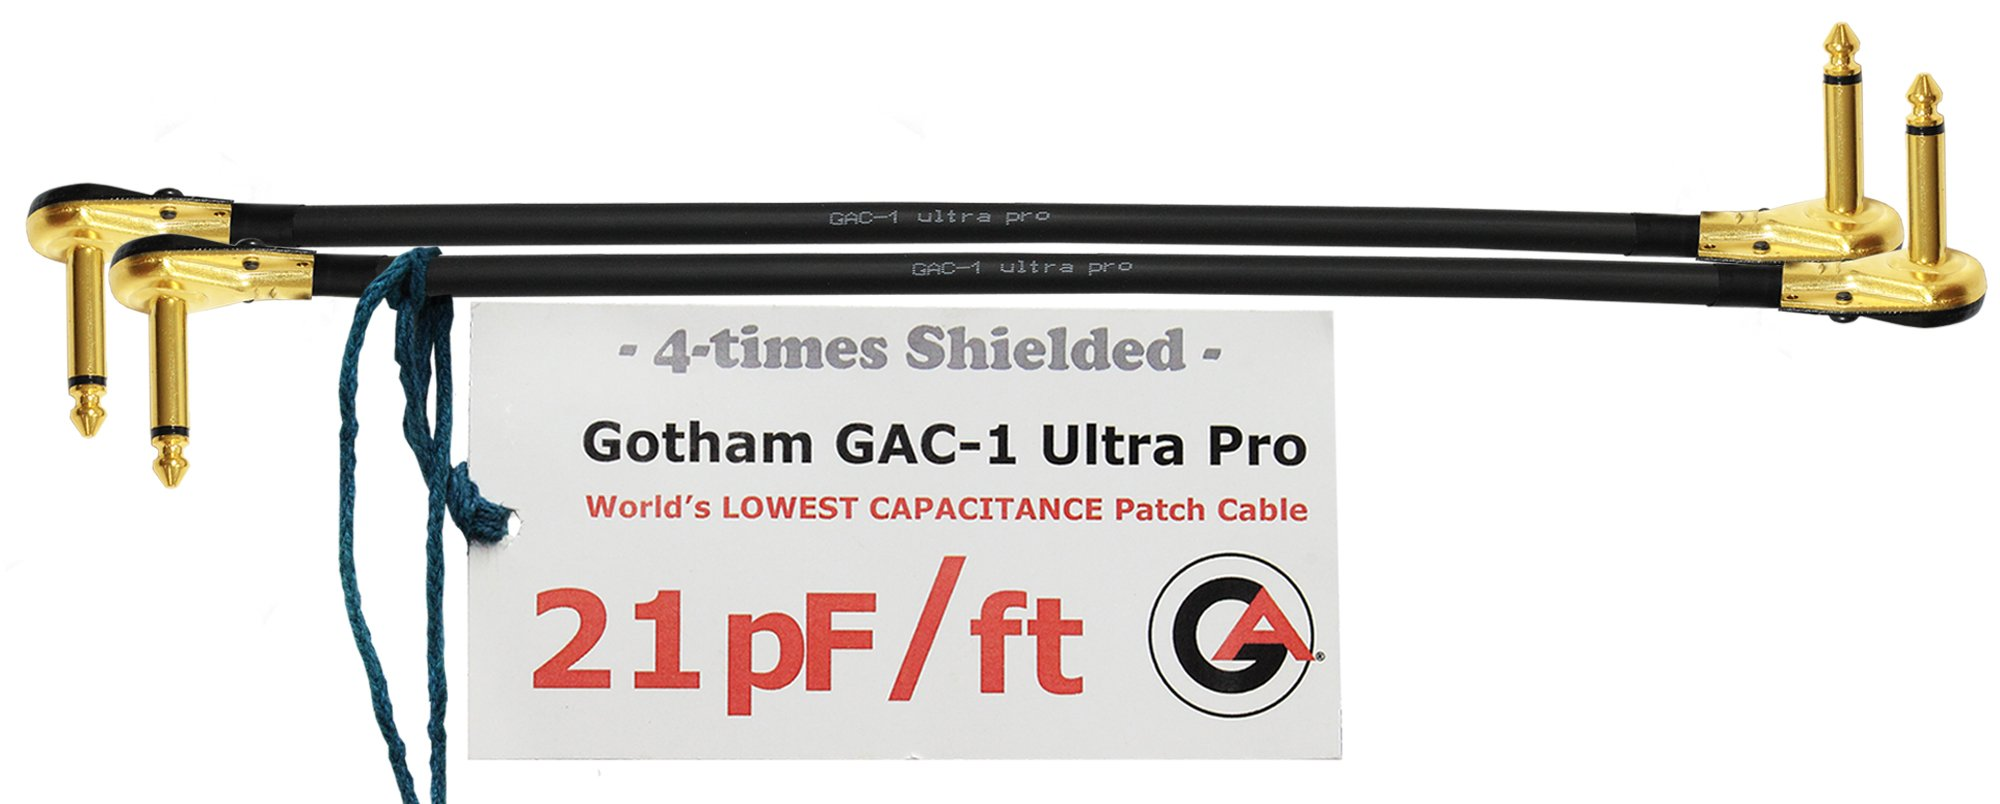 2 Units - 2 Foot - Gotham GAC-1 Ultra Pro - Low-Cap (21pF/ft) Guitar Bass Effects Instrument, S-Shaped Patch Cable & Gold (6.35mm) Low-Profile R/A Pancake Plugs - CUSTOM MADE By WORLDS BEST CABLES